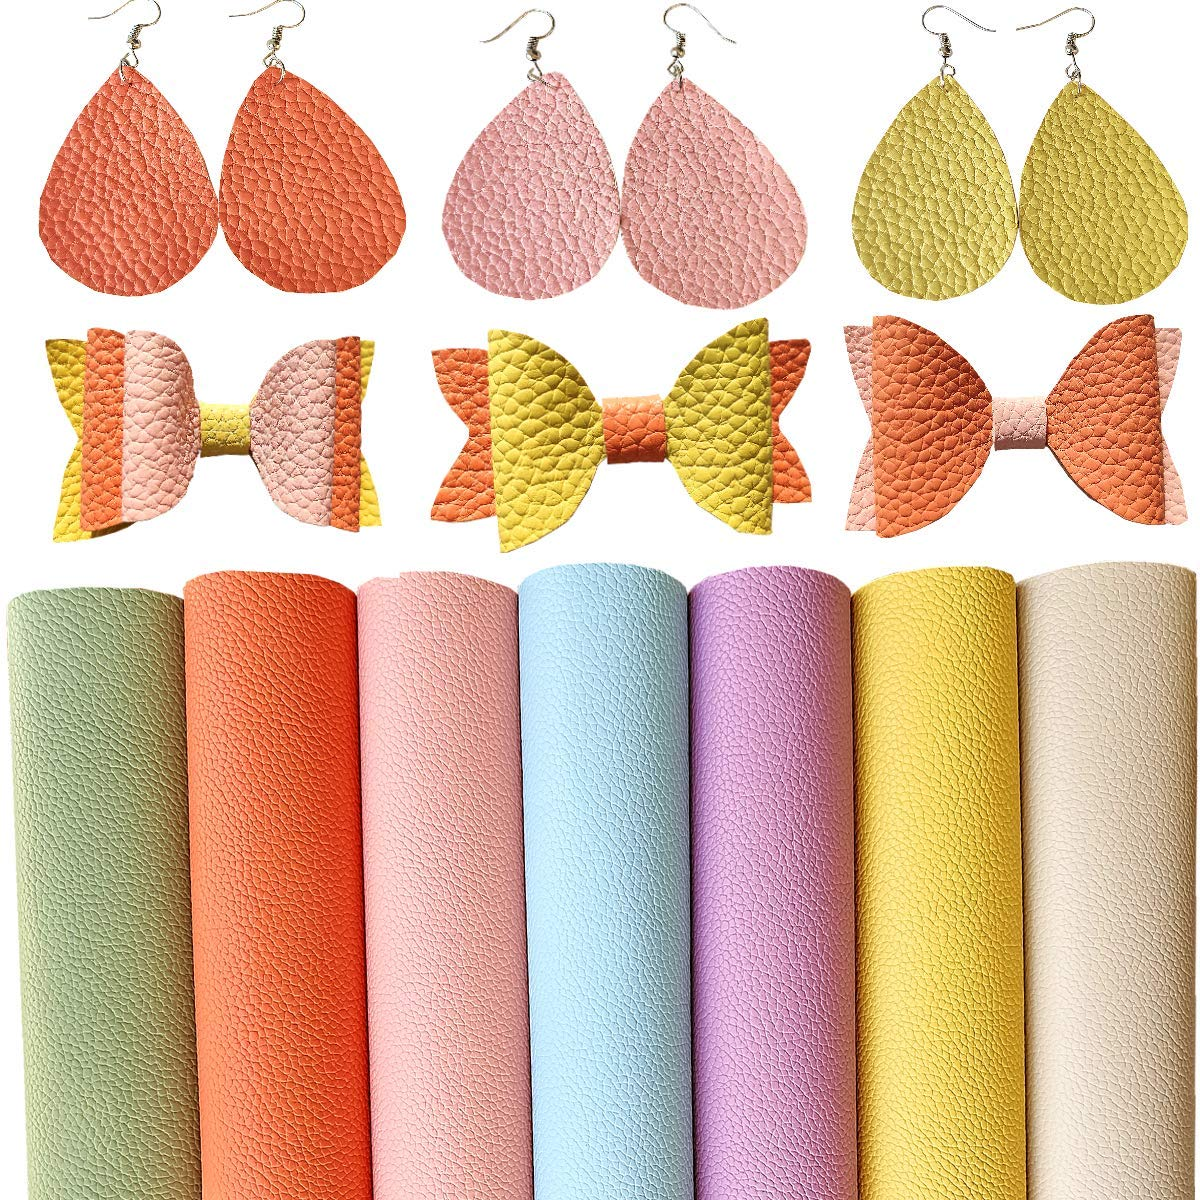 Synthetic Vinyl Fabric for Jewelry Purses Crafts,1.2mm Thickness Cotton Back SHUANGART 7 Pcs A4 Size Faux Leather Sheets for Earrings Bows Making Lovely Macaroon Colors 21 X 30cm